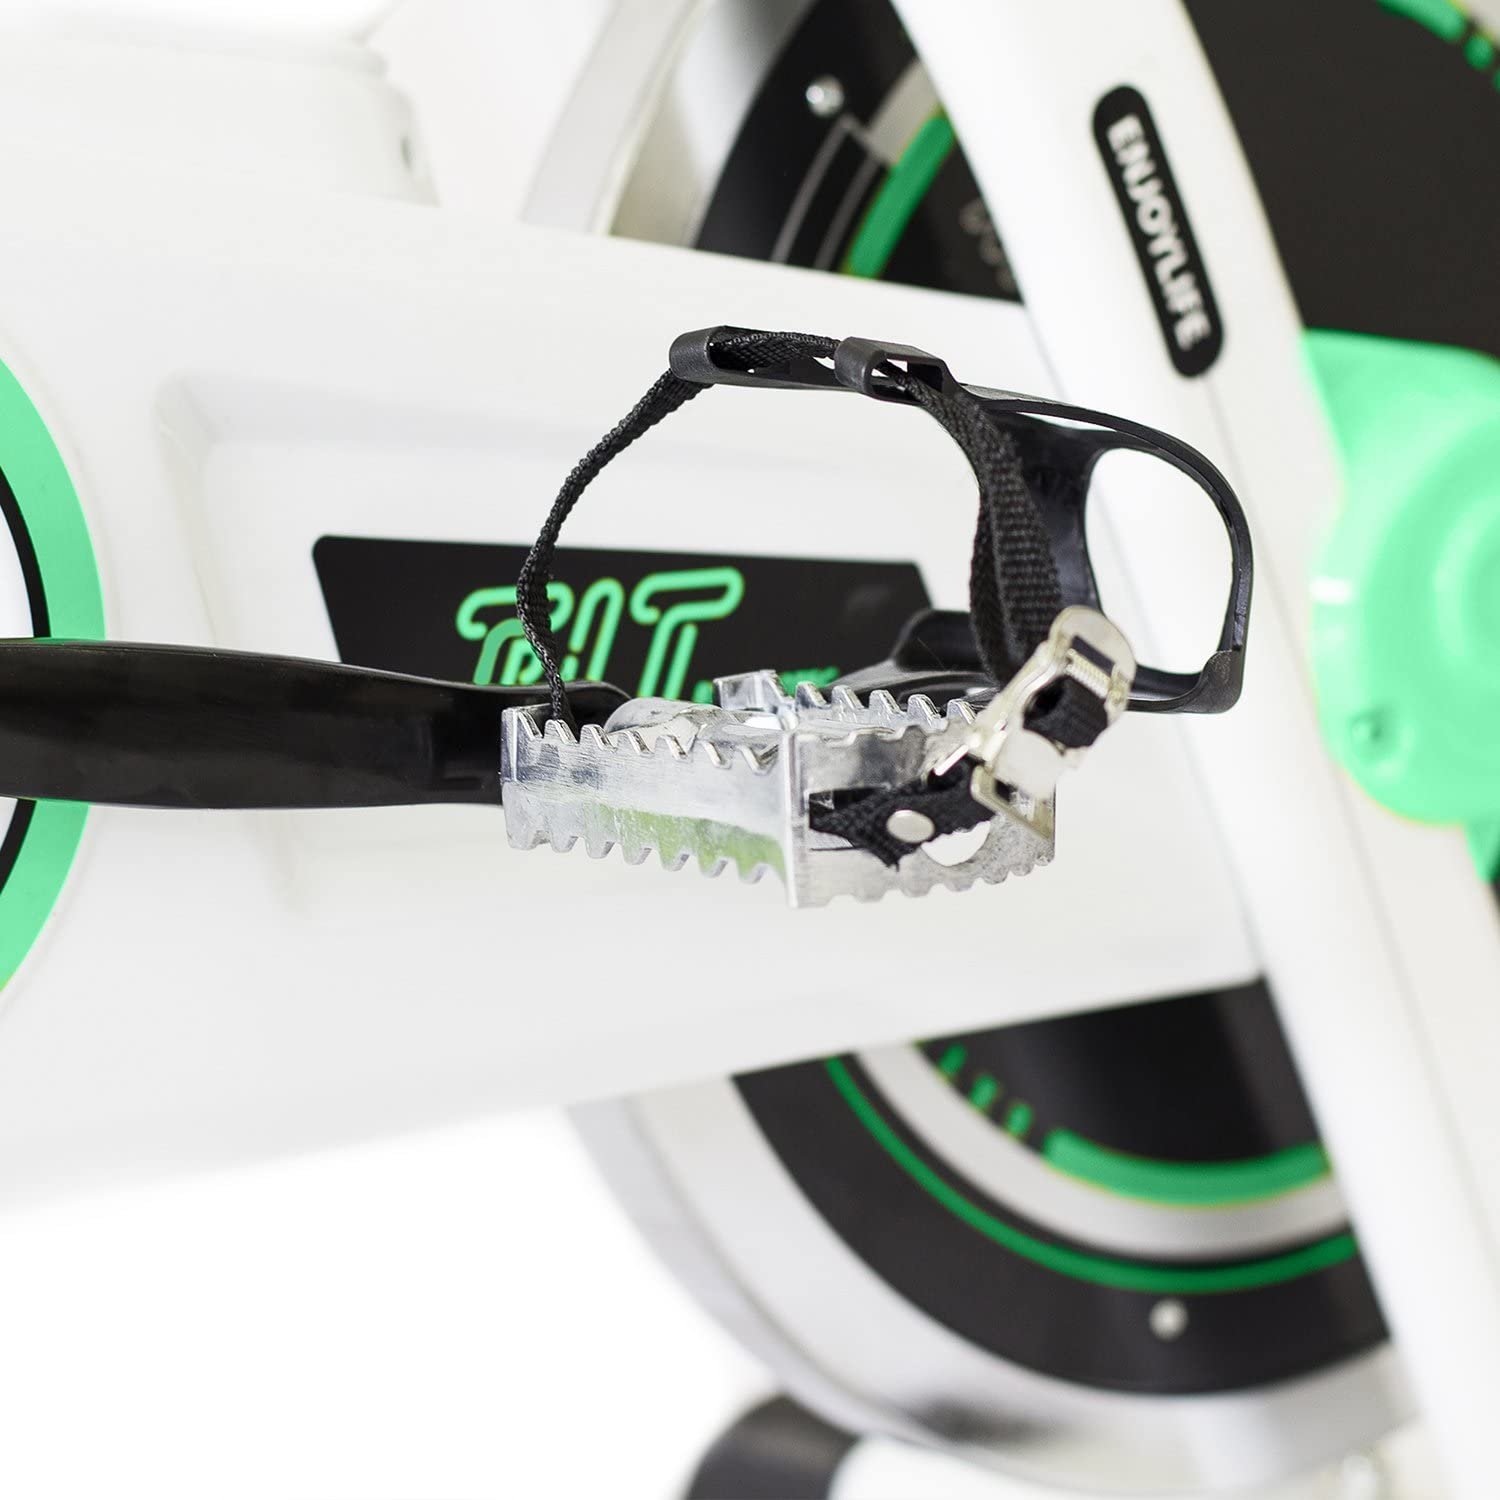 Cecotec V/ÉLO DE Spinning Fitness Micro-Ordinateur LCD Spin Extreme